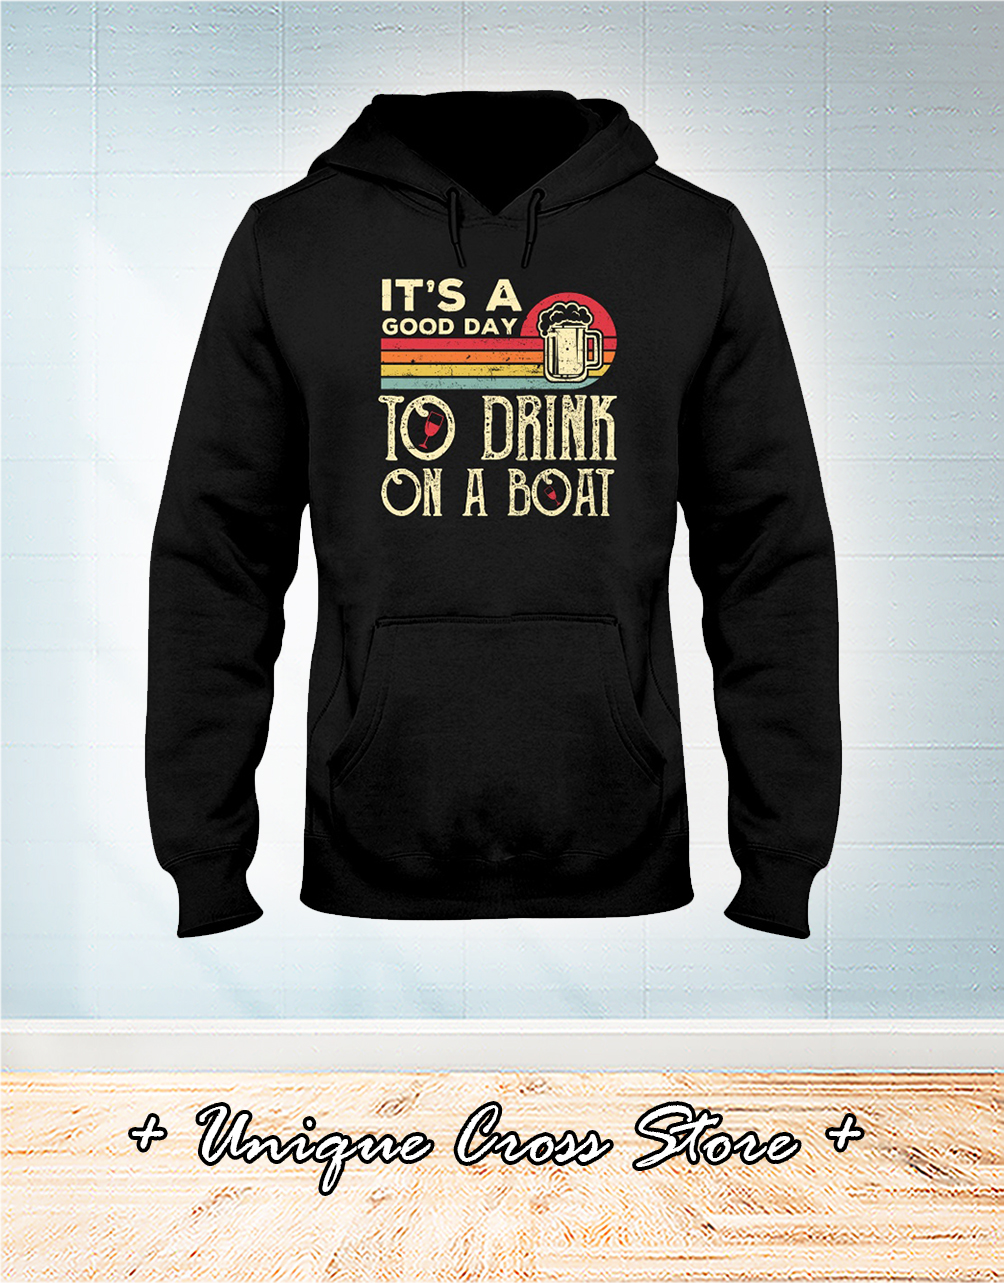 It's A Good Day To Drink On A Boat hoodie